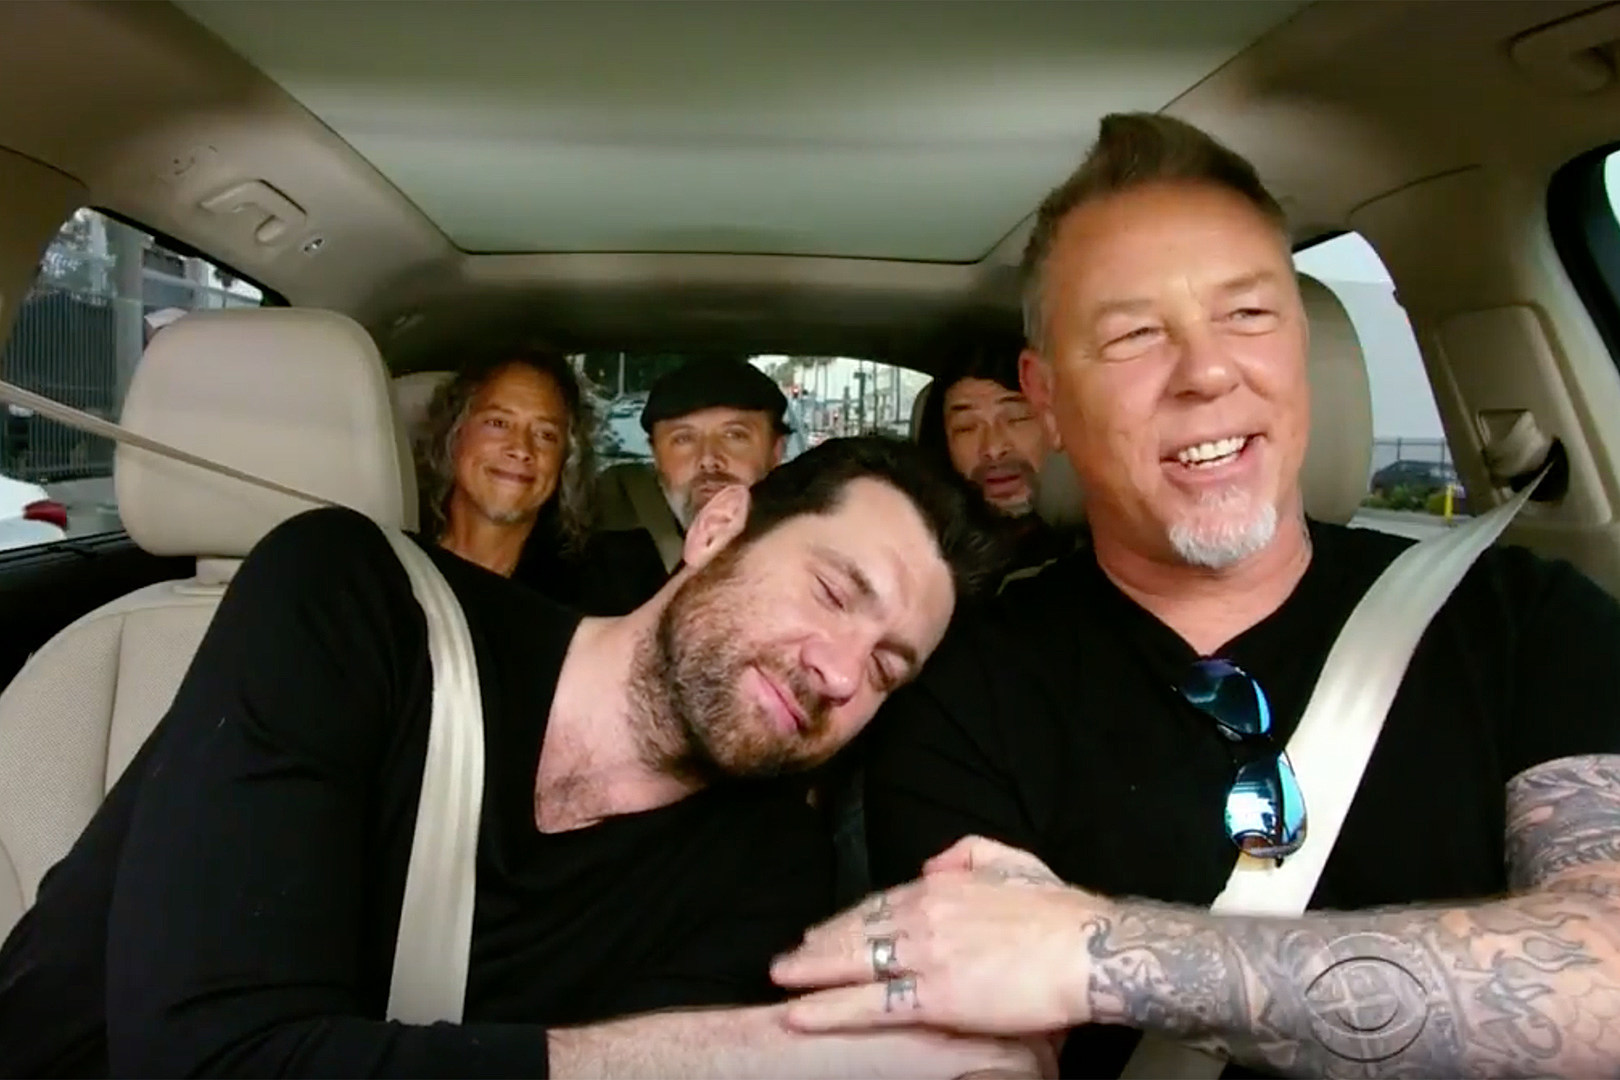 Metallica Play 'Metal Have I Ever' in 'Carpool Karaoke' Episode, Billy Eichner Teases Premiere on 'Late Late Show'